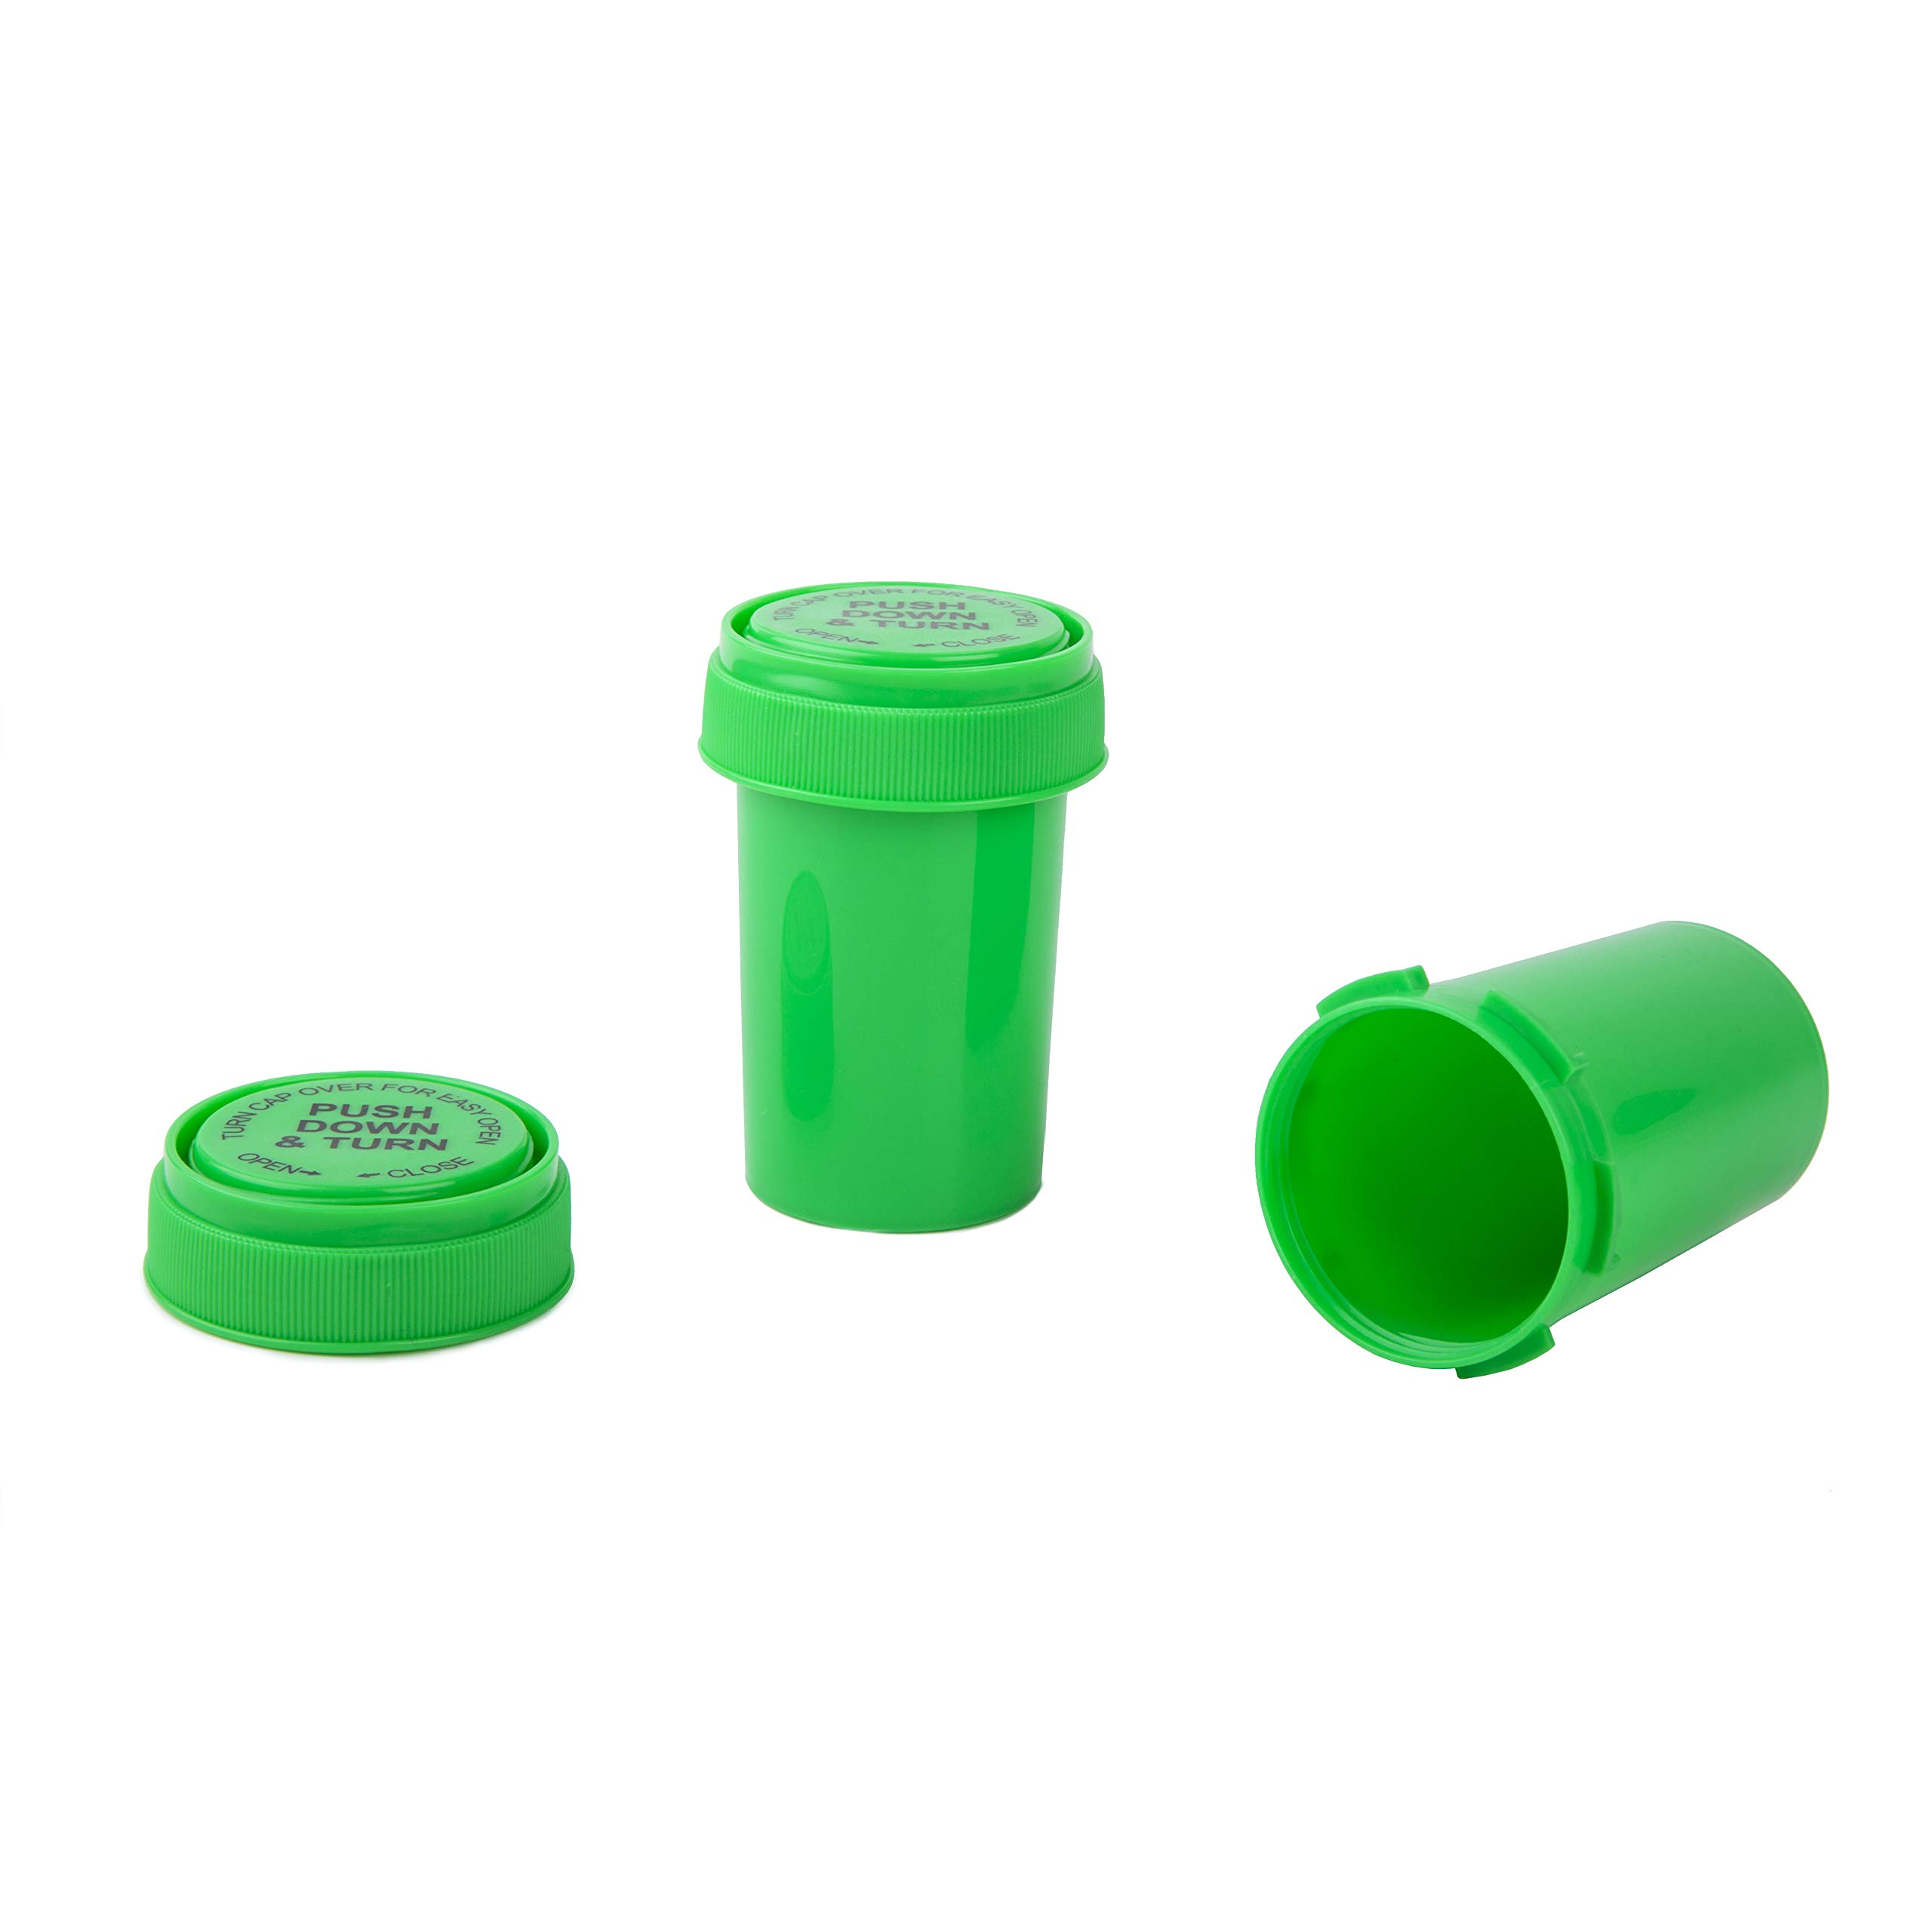 Loud Lock - Child Resistant Pop Top Vial Container Bottles - 20 Dram Size - 240 Count Case - (Green) by Loud Lock